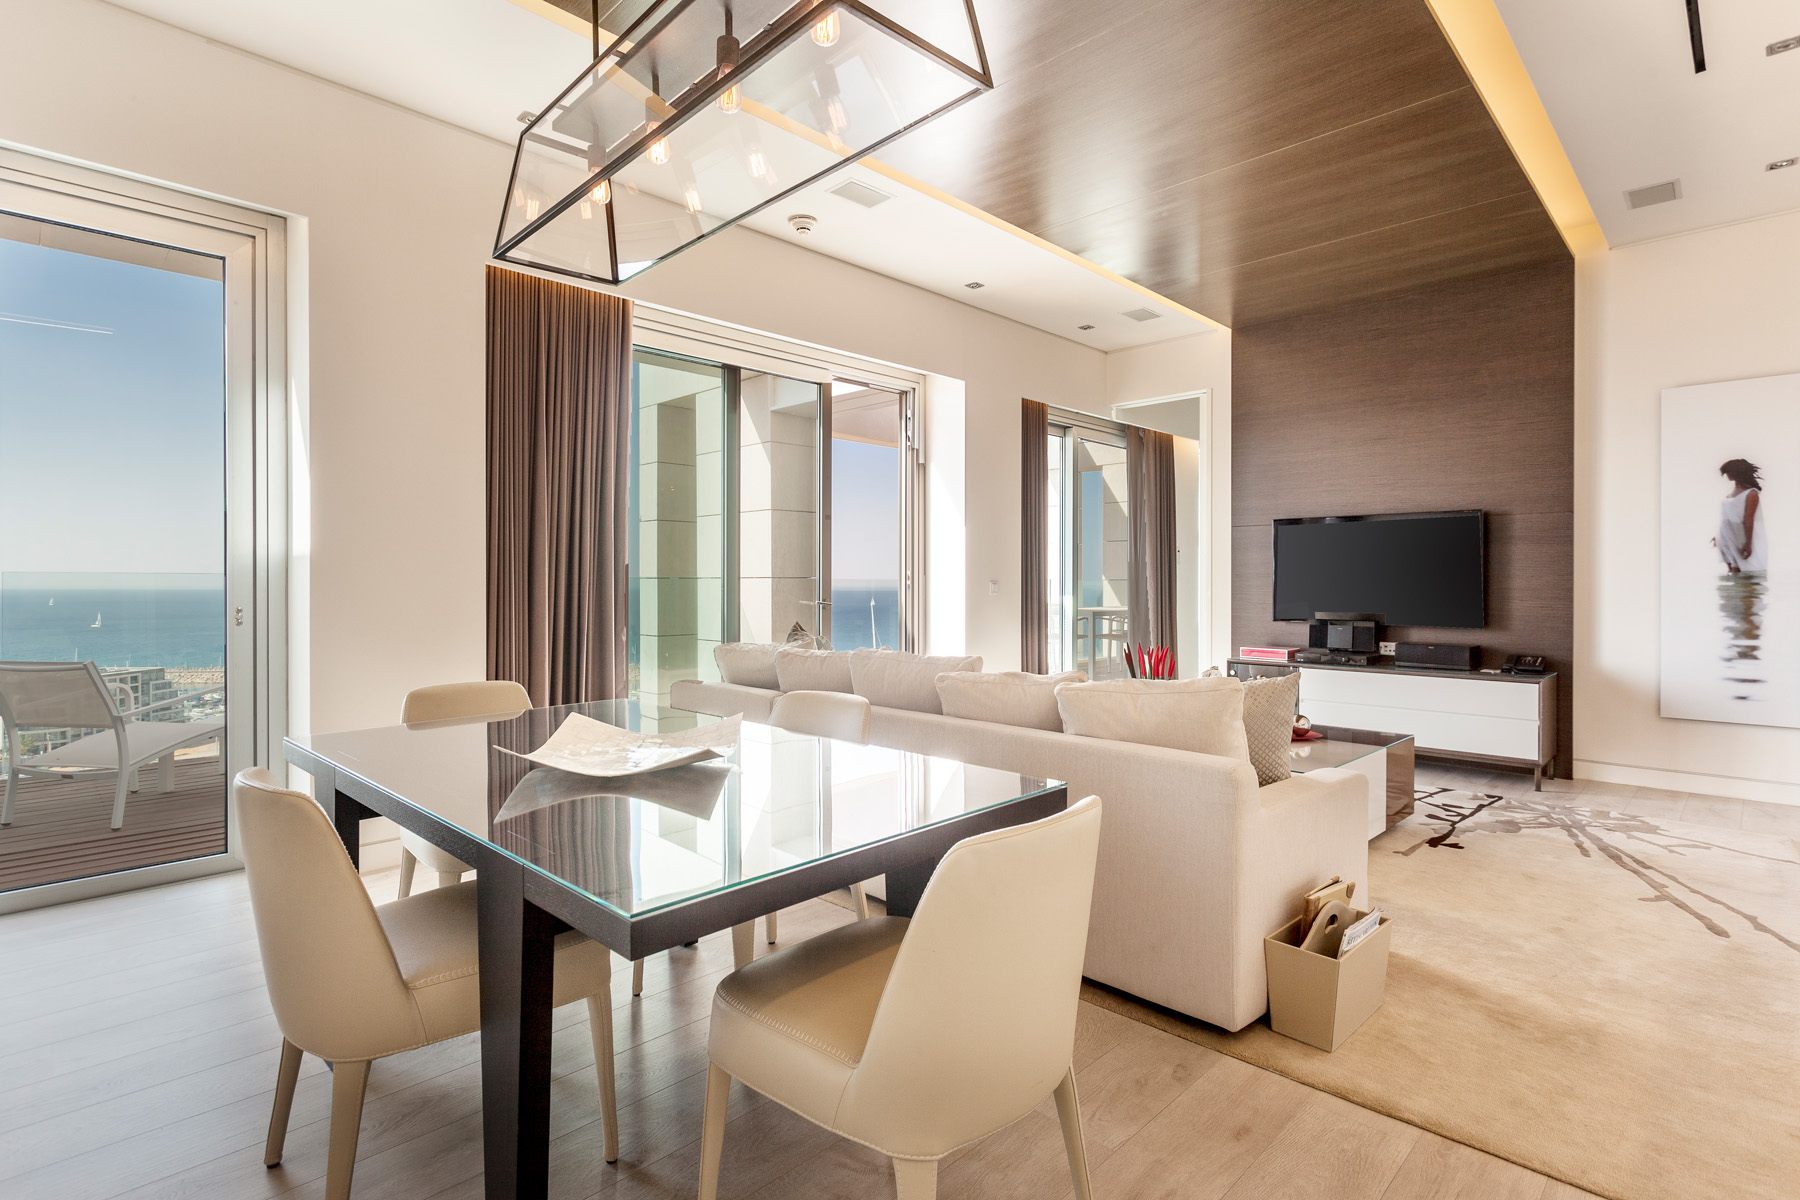 Apartment for Sale at Ritz-Carlton Residences Herzliya Luxury Apartment Herzliya, Israel Israel